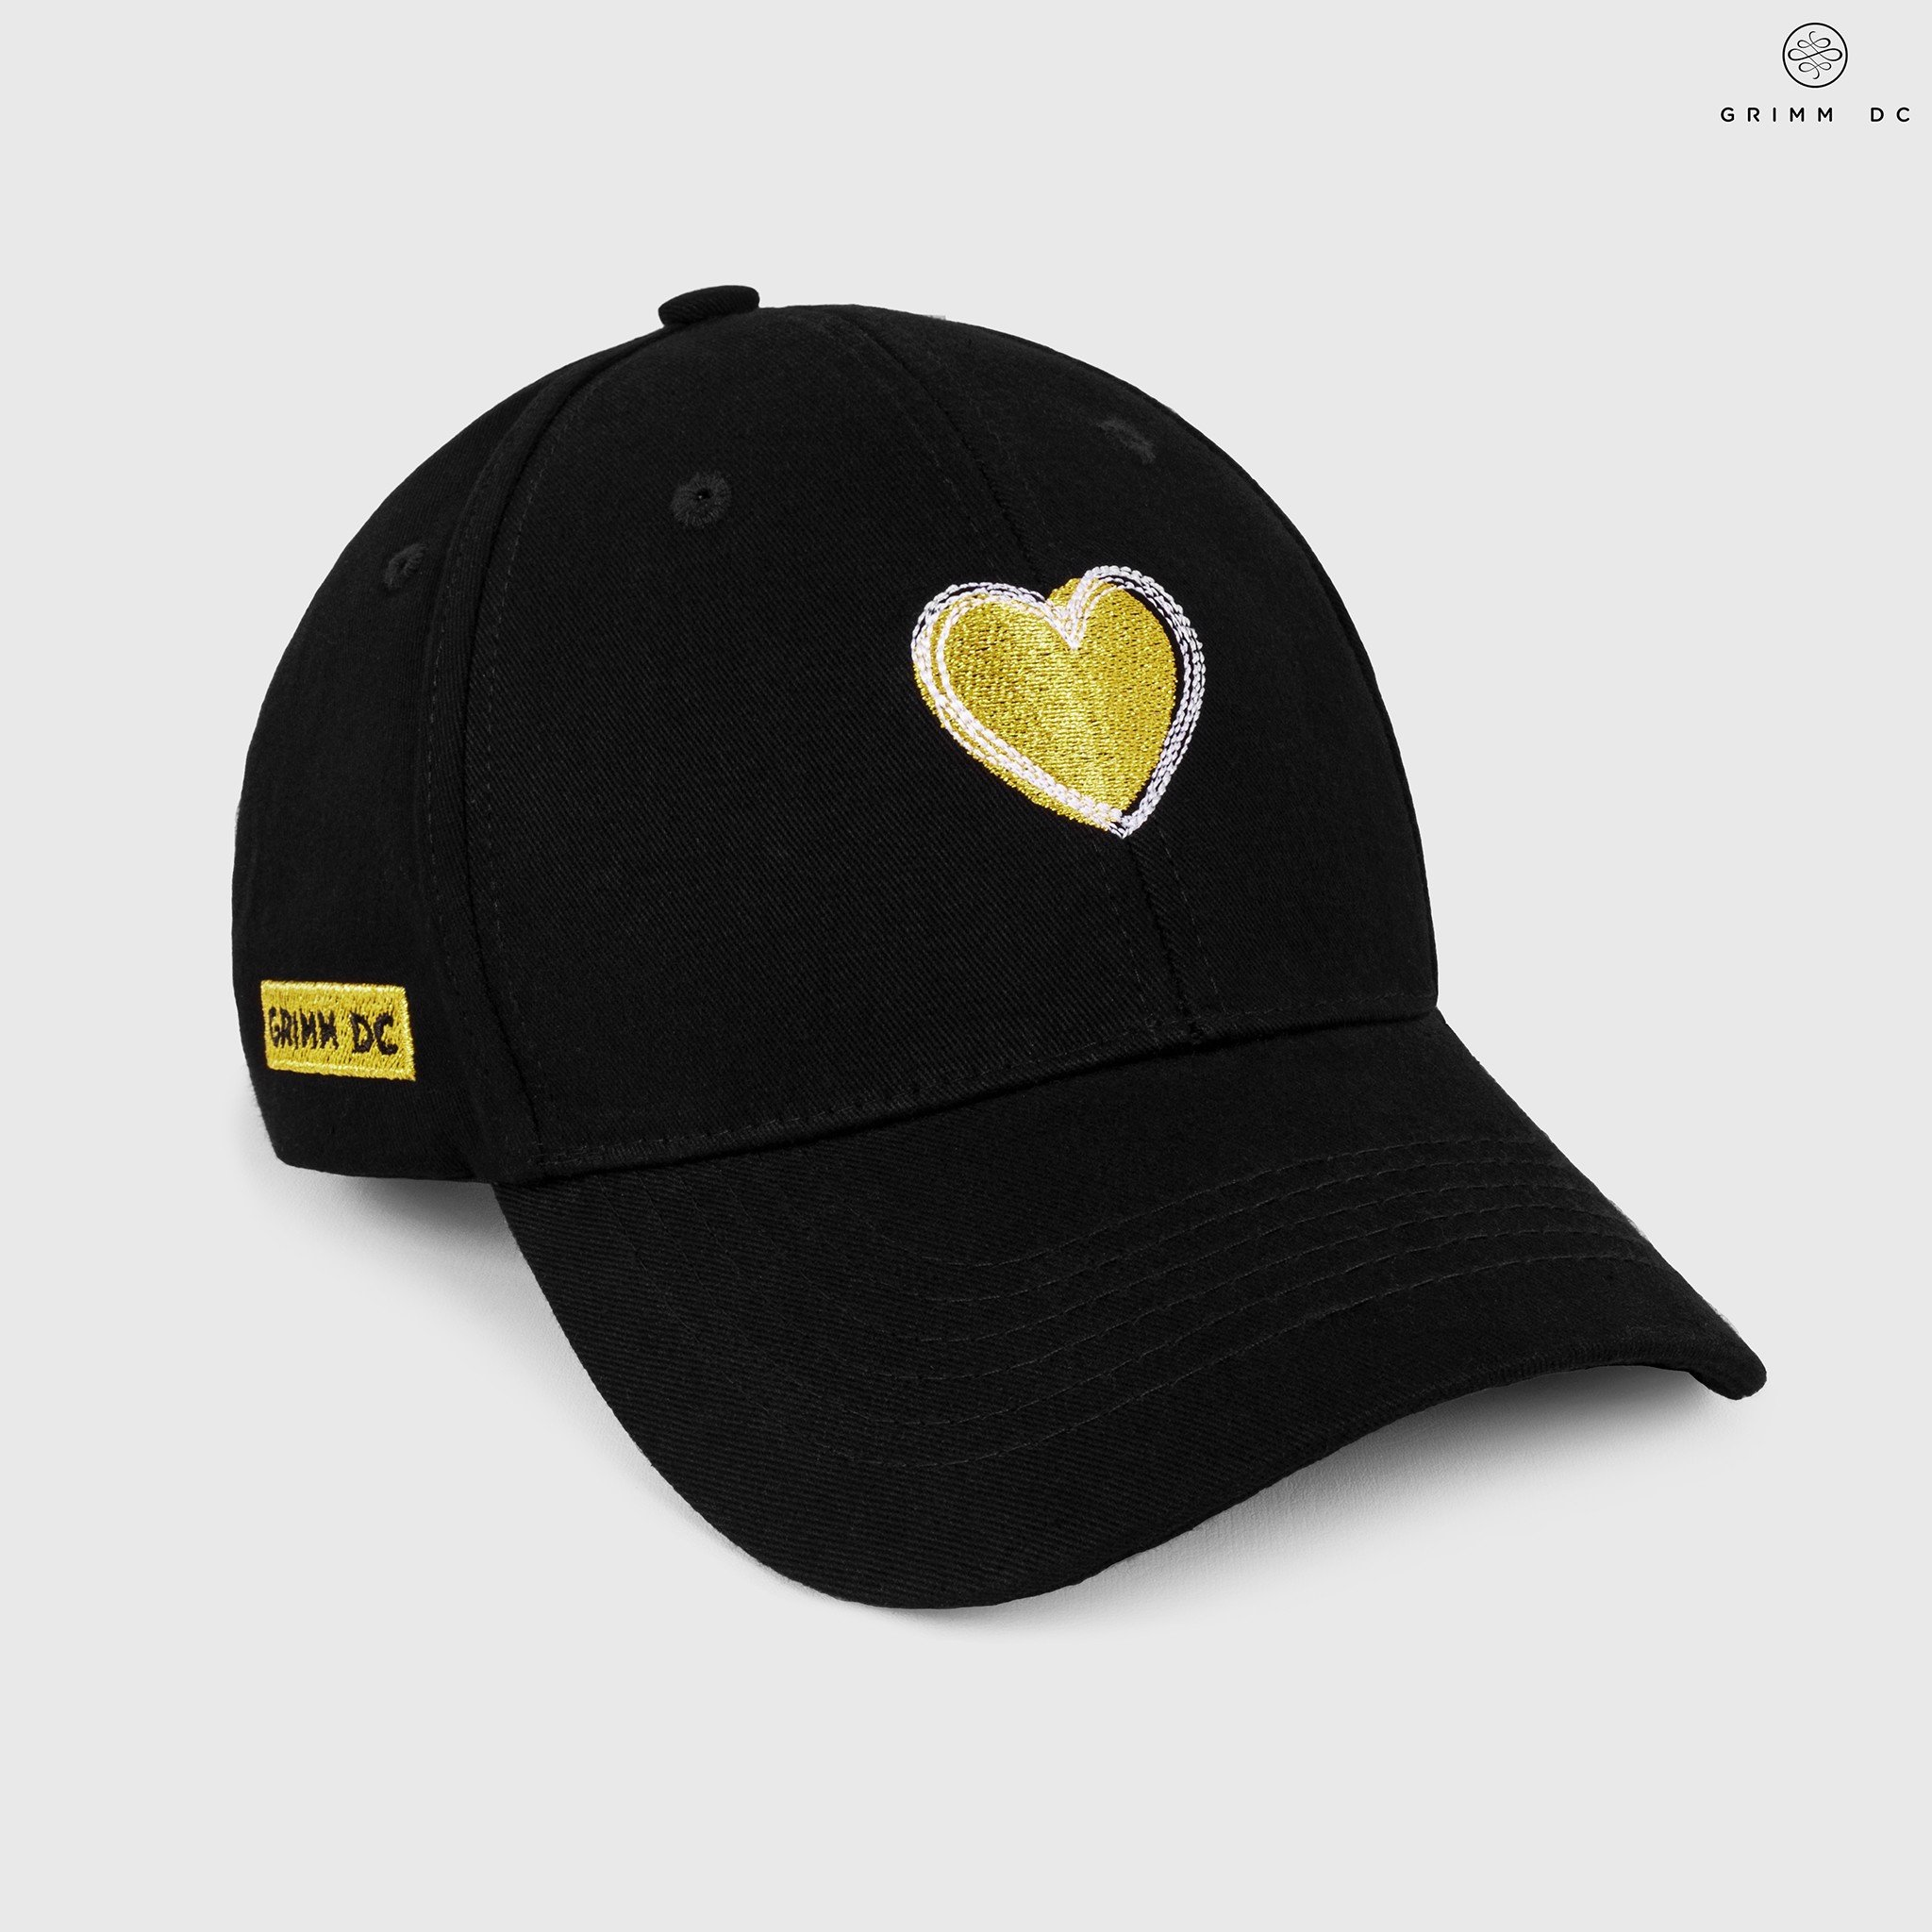 Nón tim vàng / Couple Gold cap